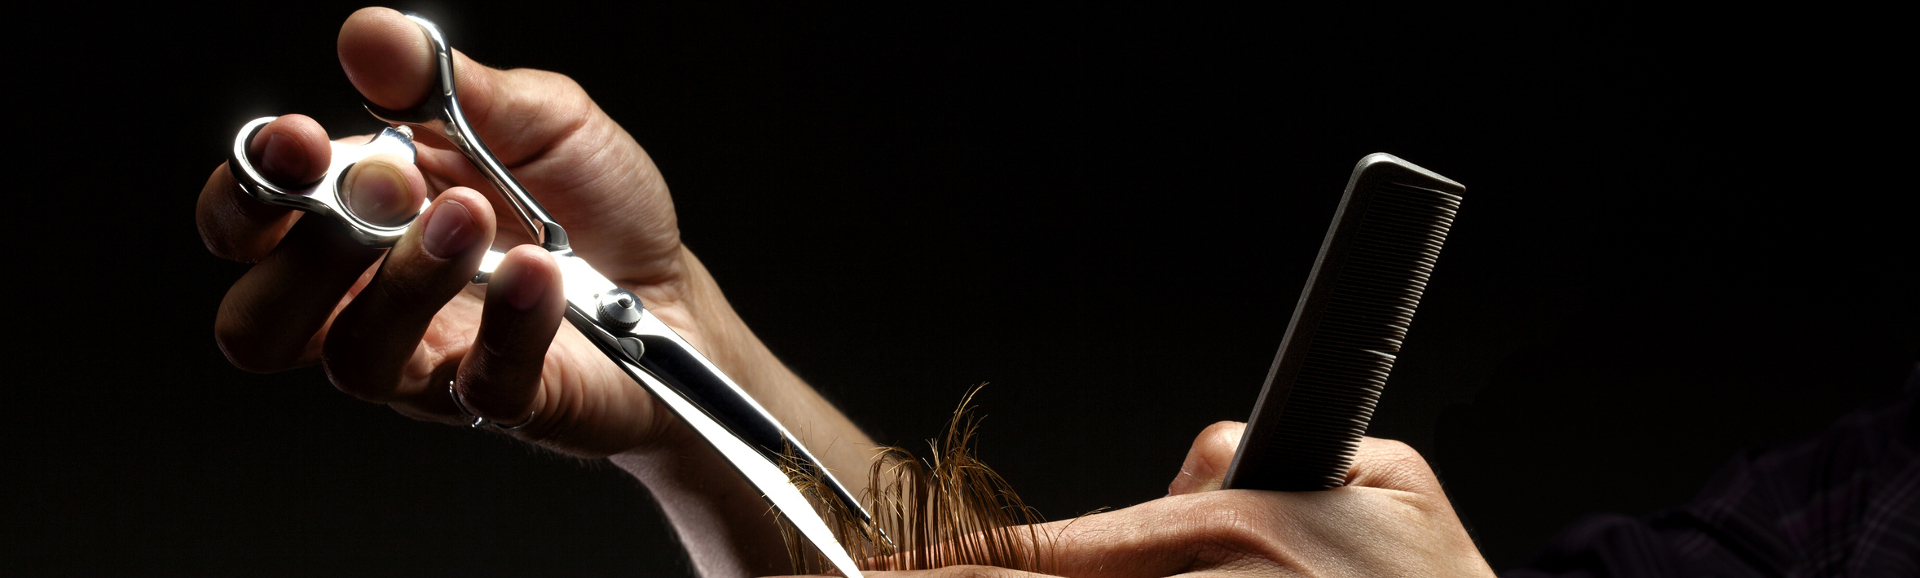 Studio shot on black of hairdresser's hands cutting red woman hair with professional scissors